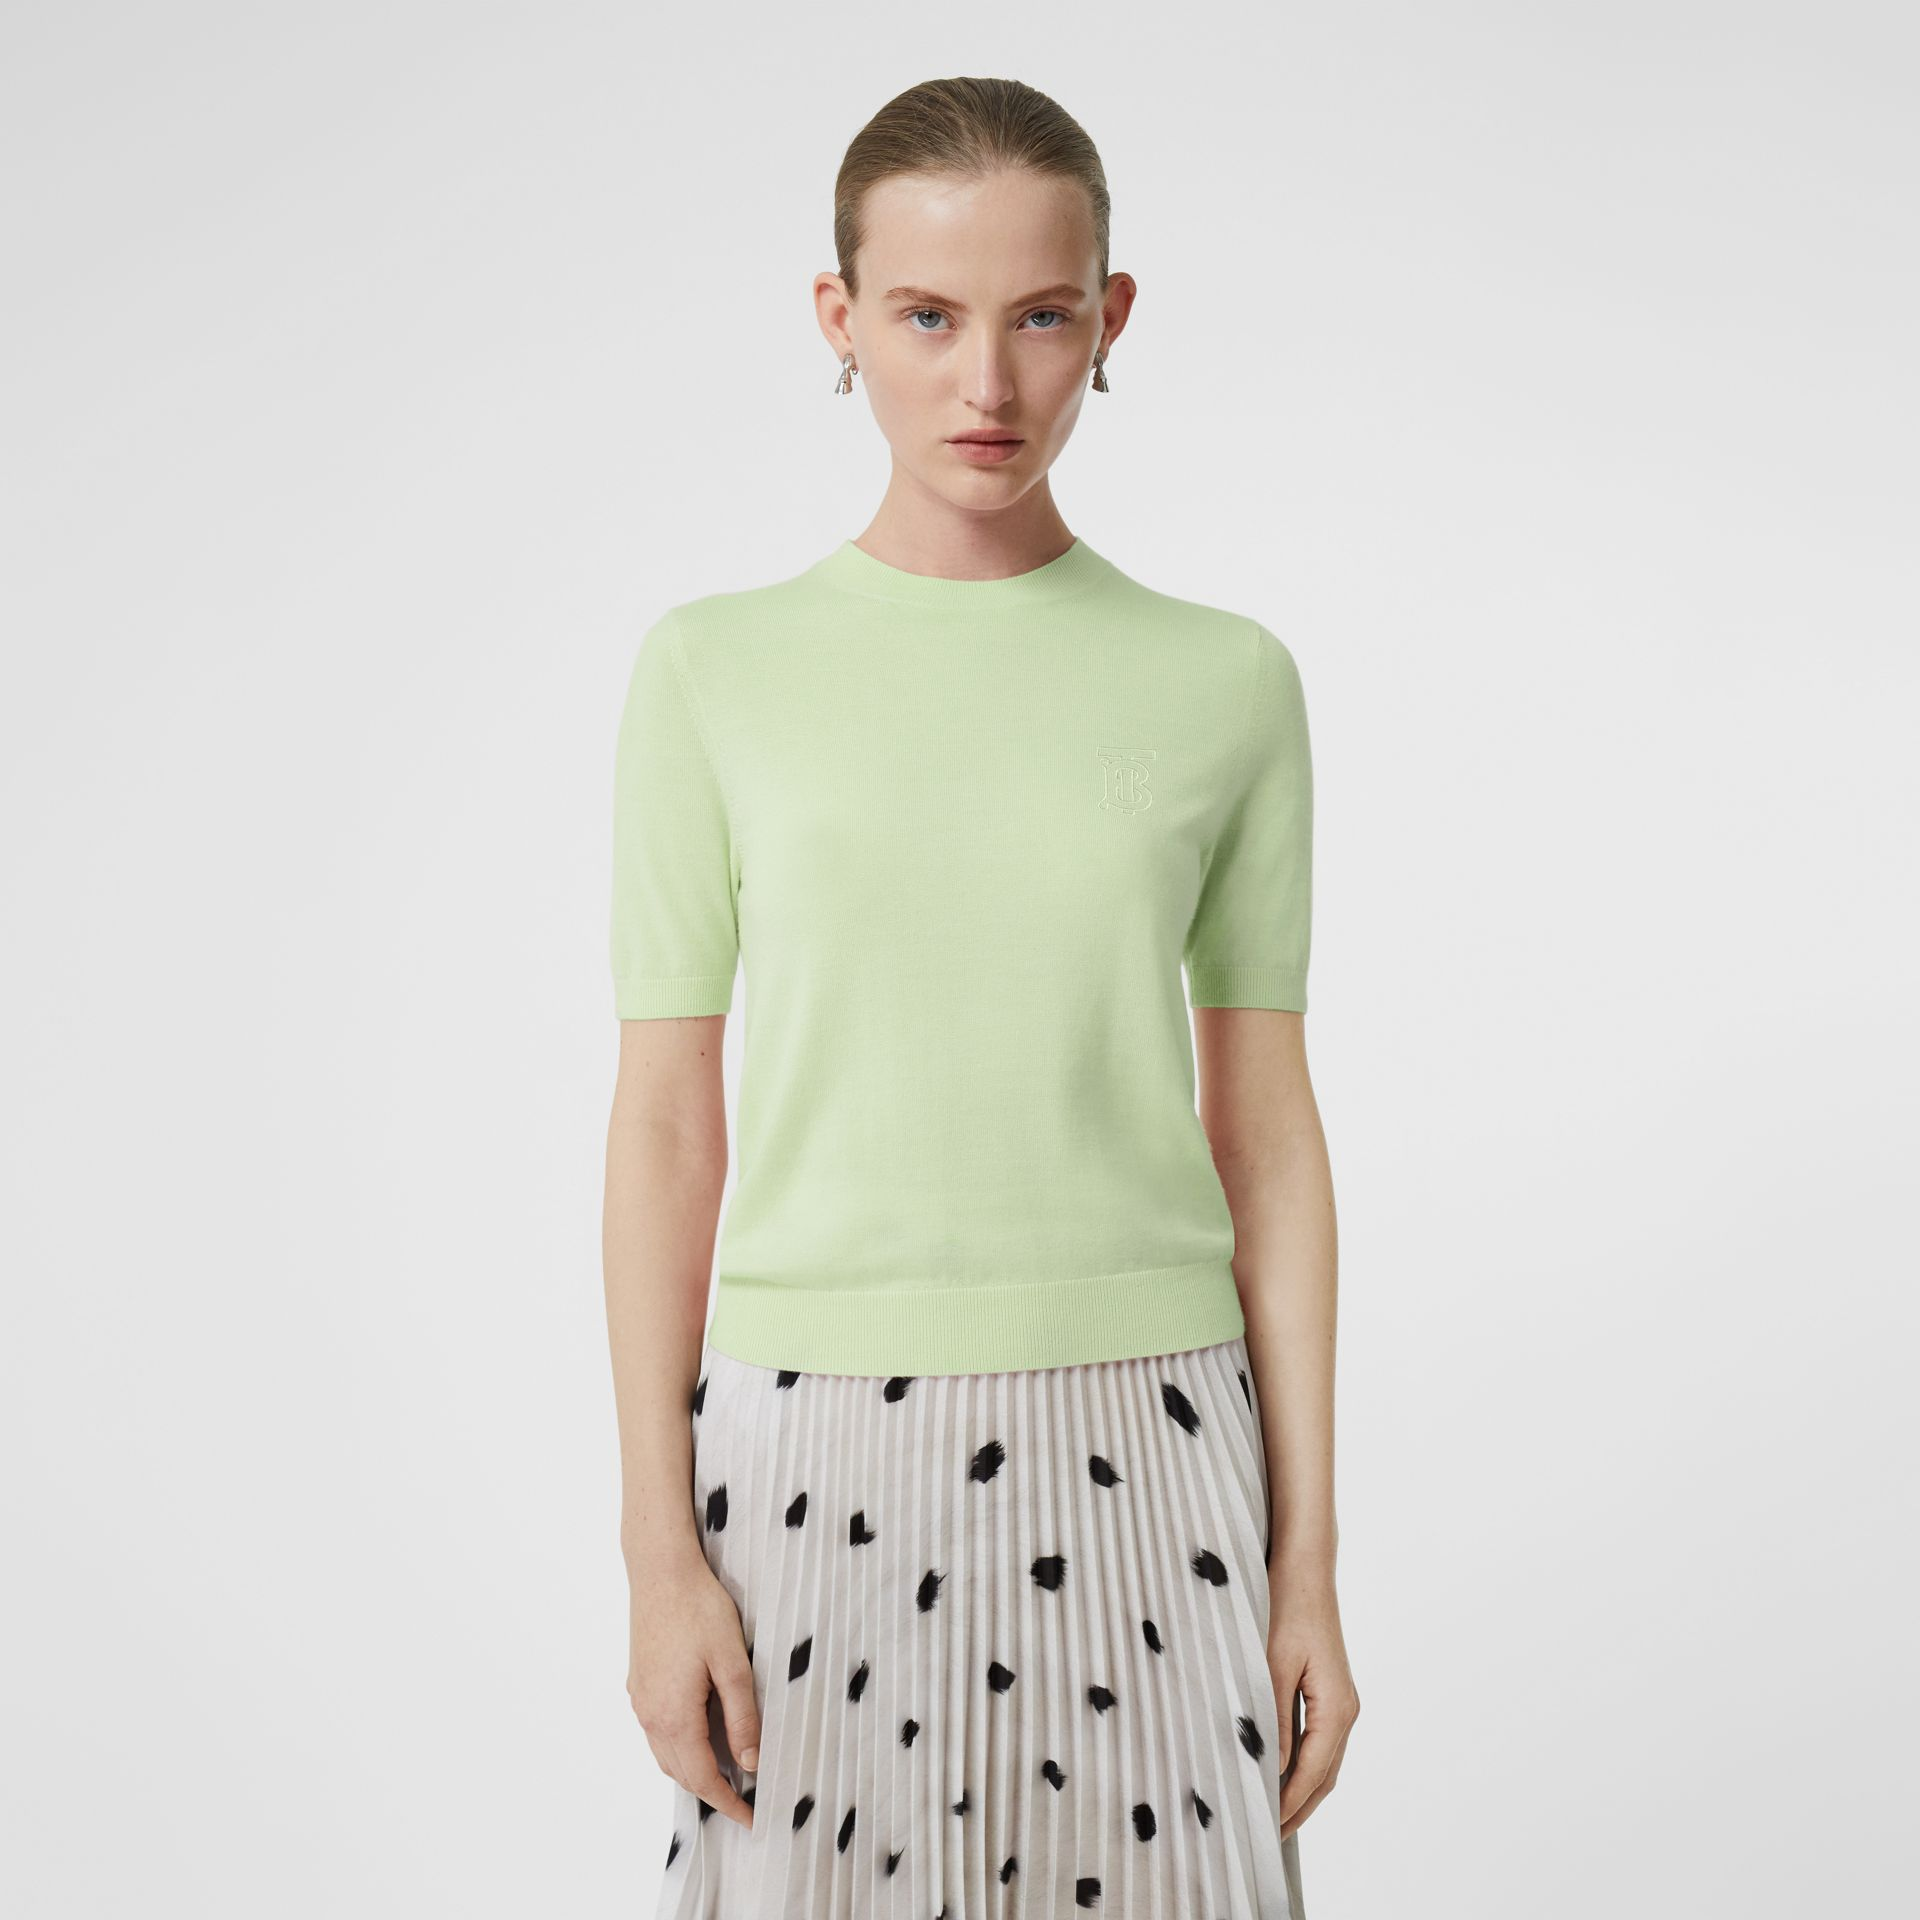 Monogram Motif Cashmere Top in Pistachio - Women | Burberry - gallery image 4